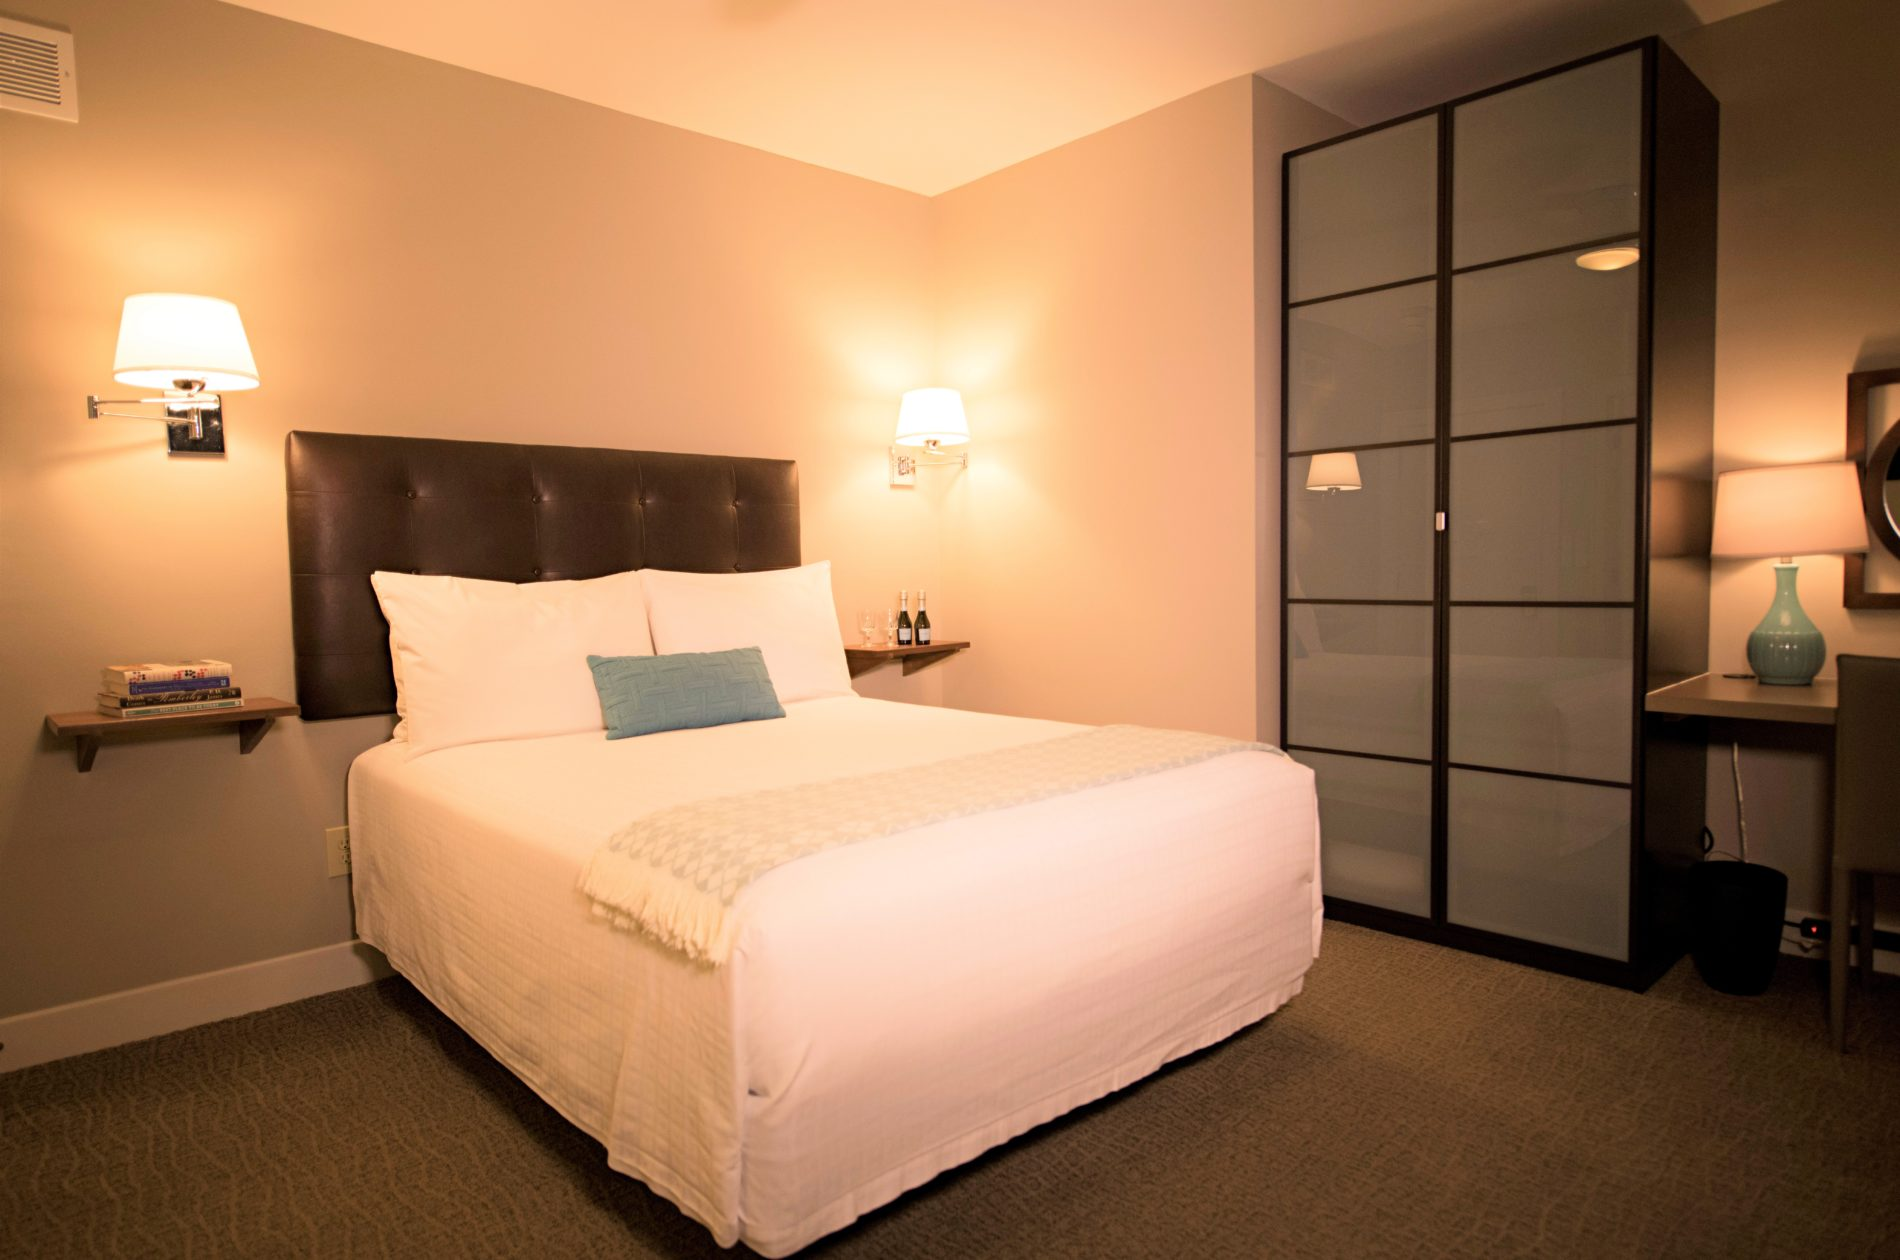 Room One with view of bed and armoire